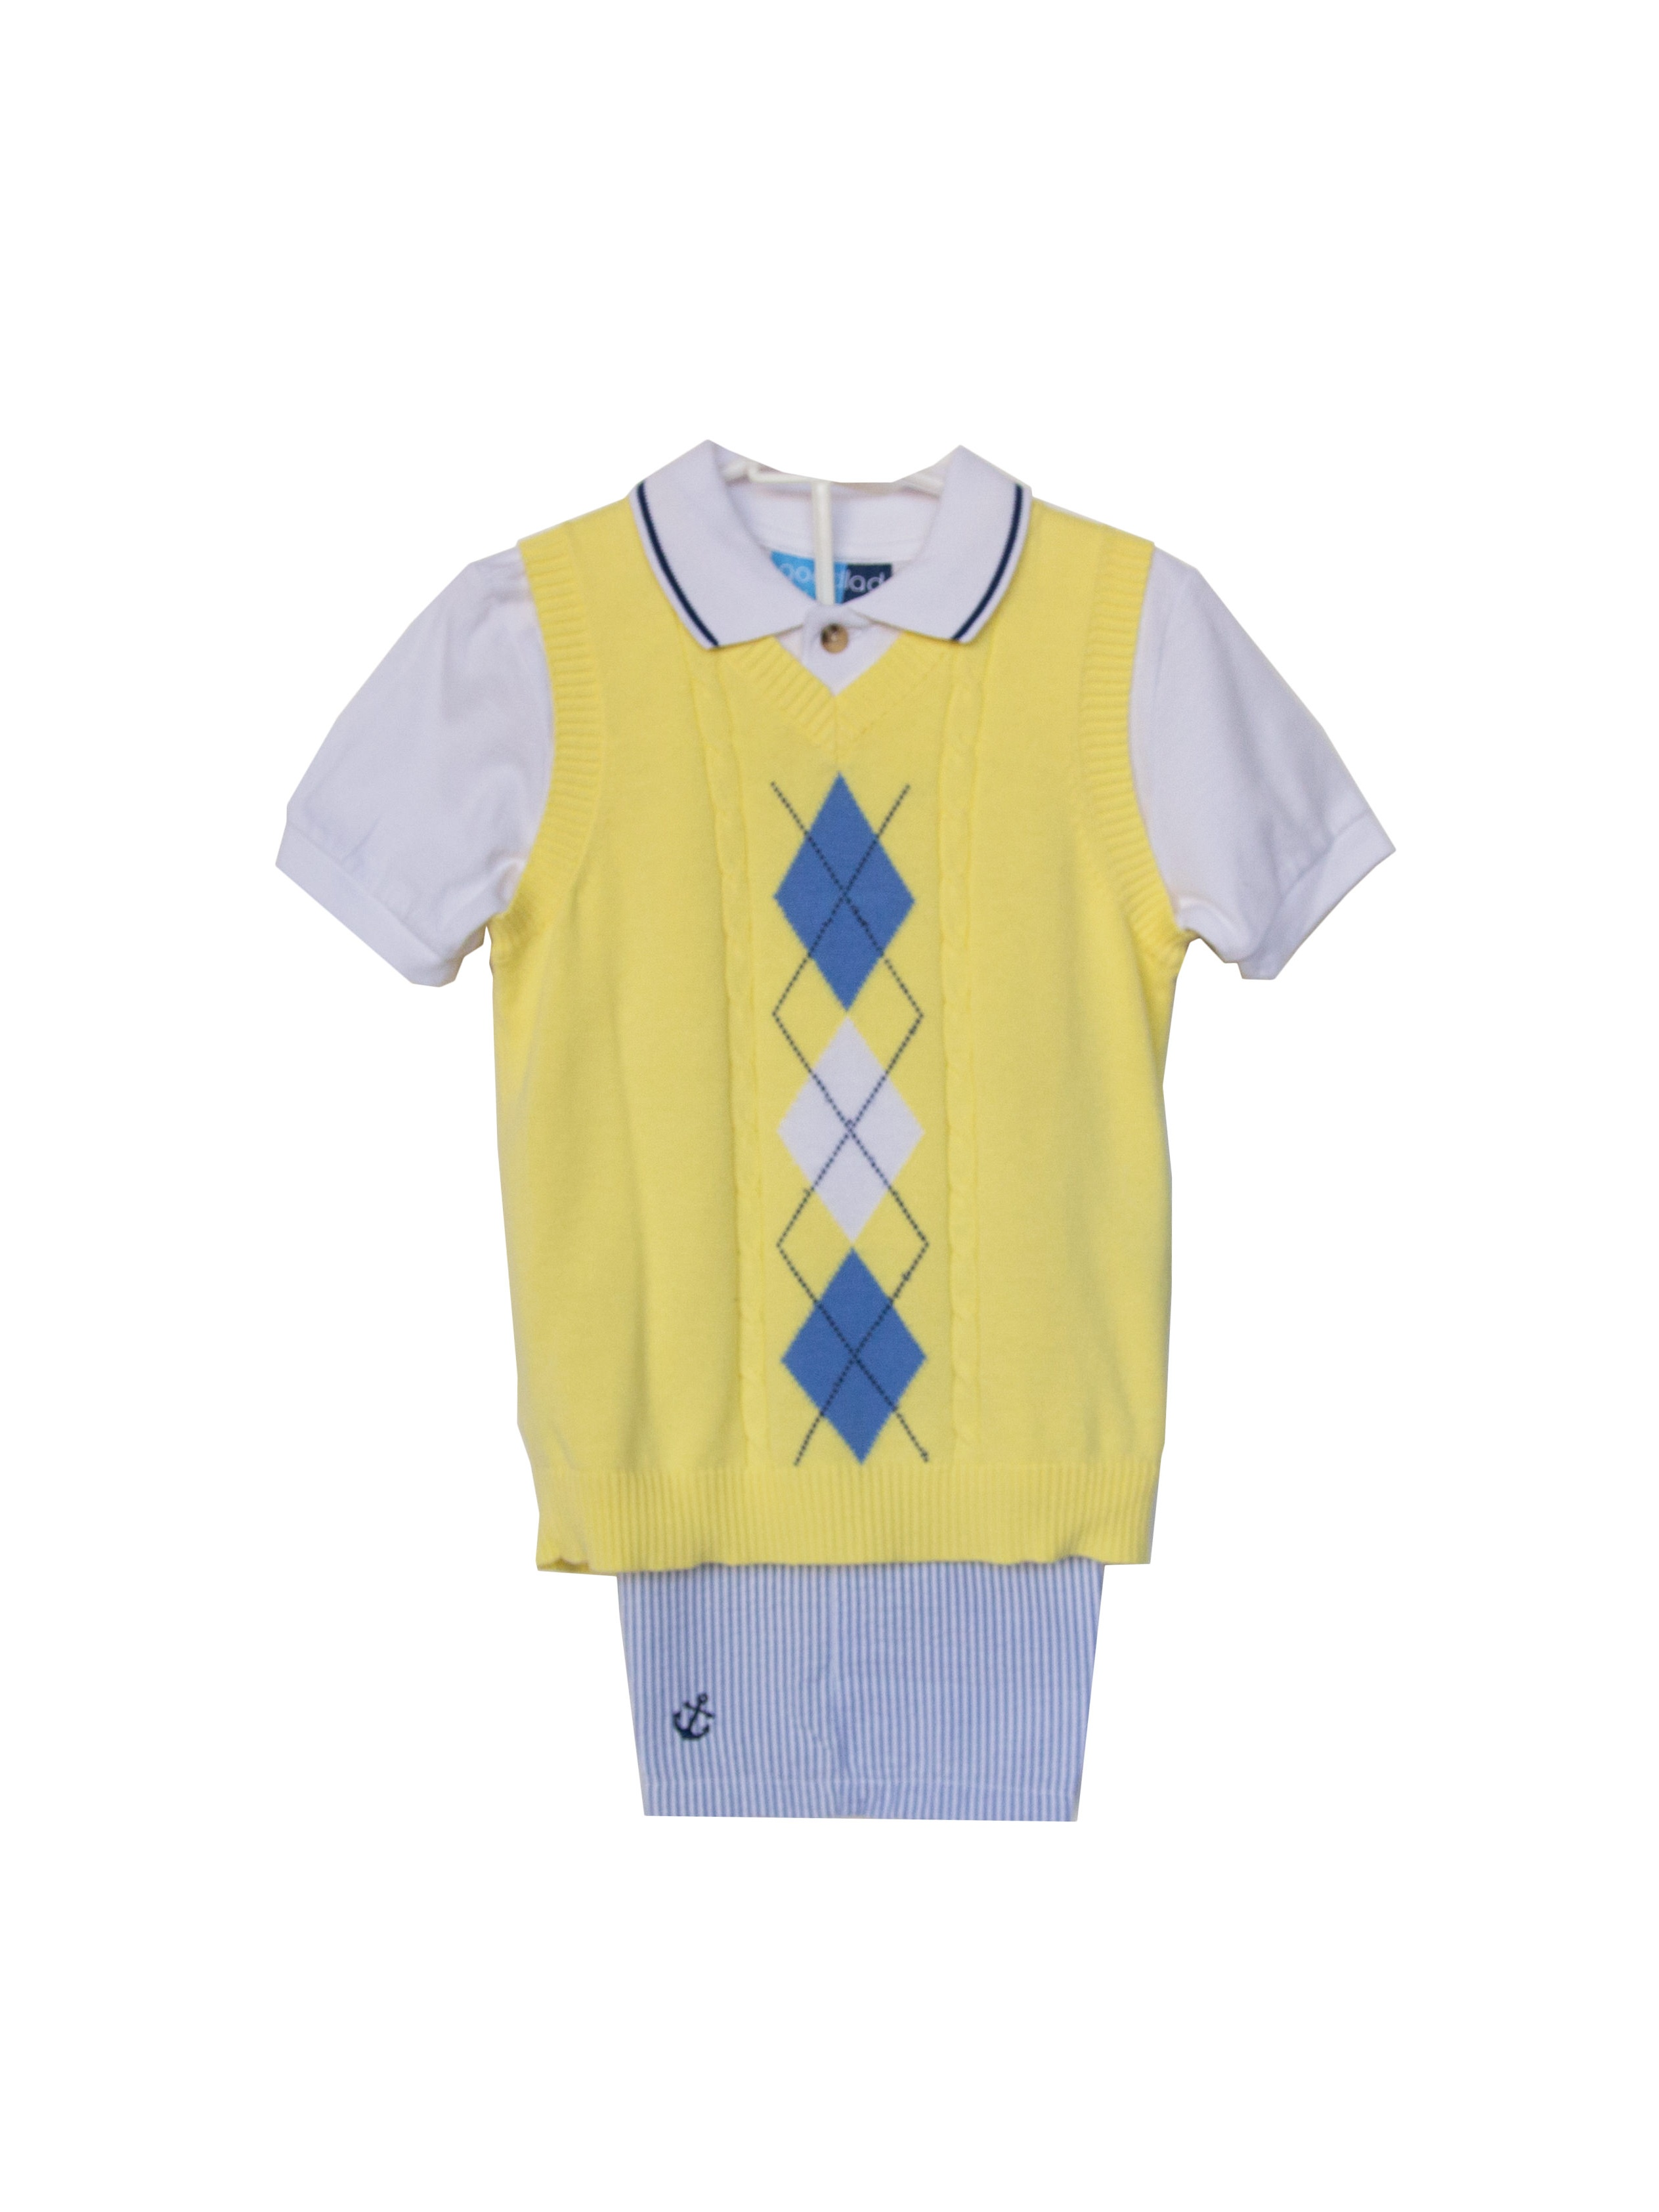 Good Lad Newborn/Infant Yellow Argyle Sweater , Nautical Embroidered Short